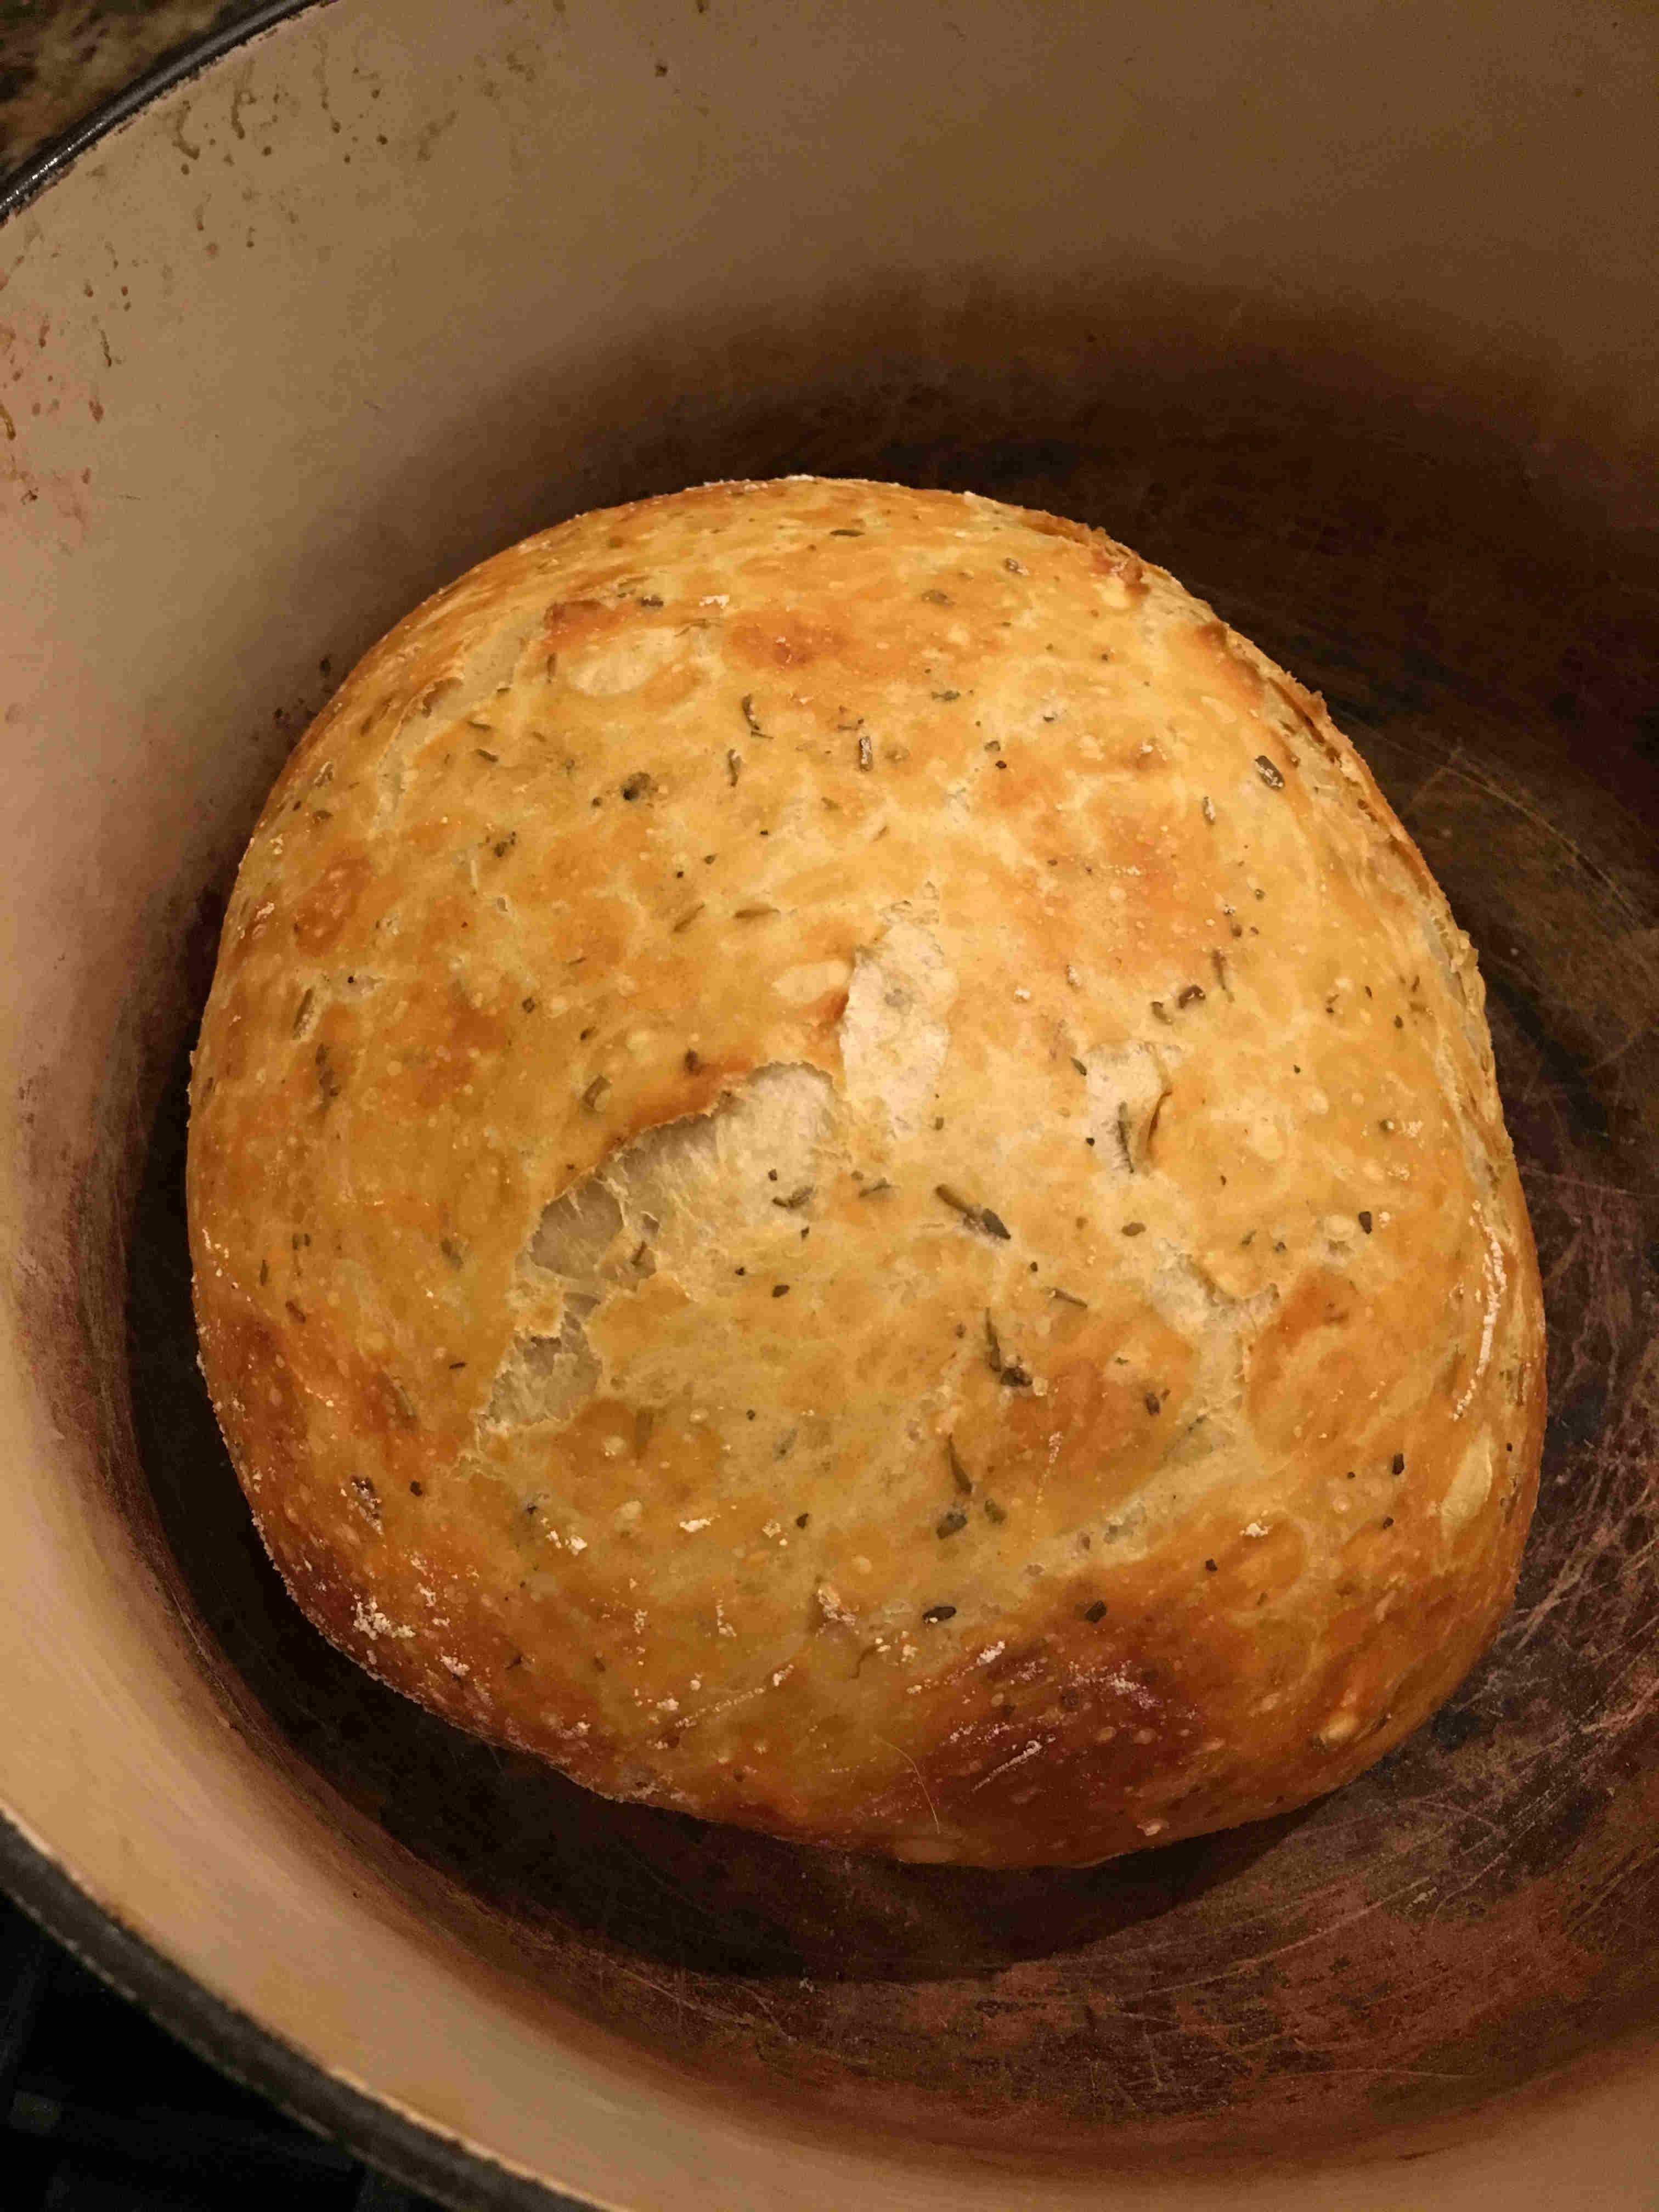 in Dutch oven before baking